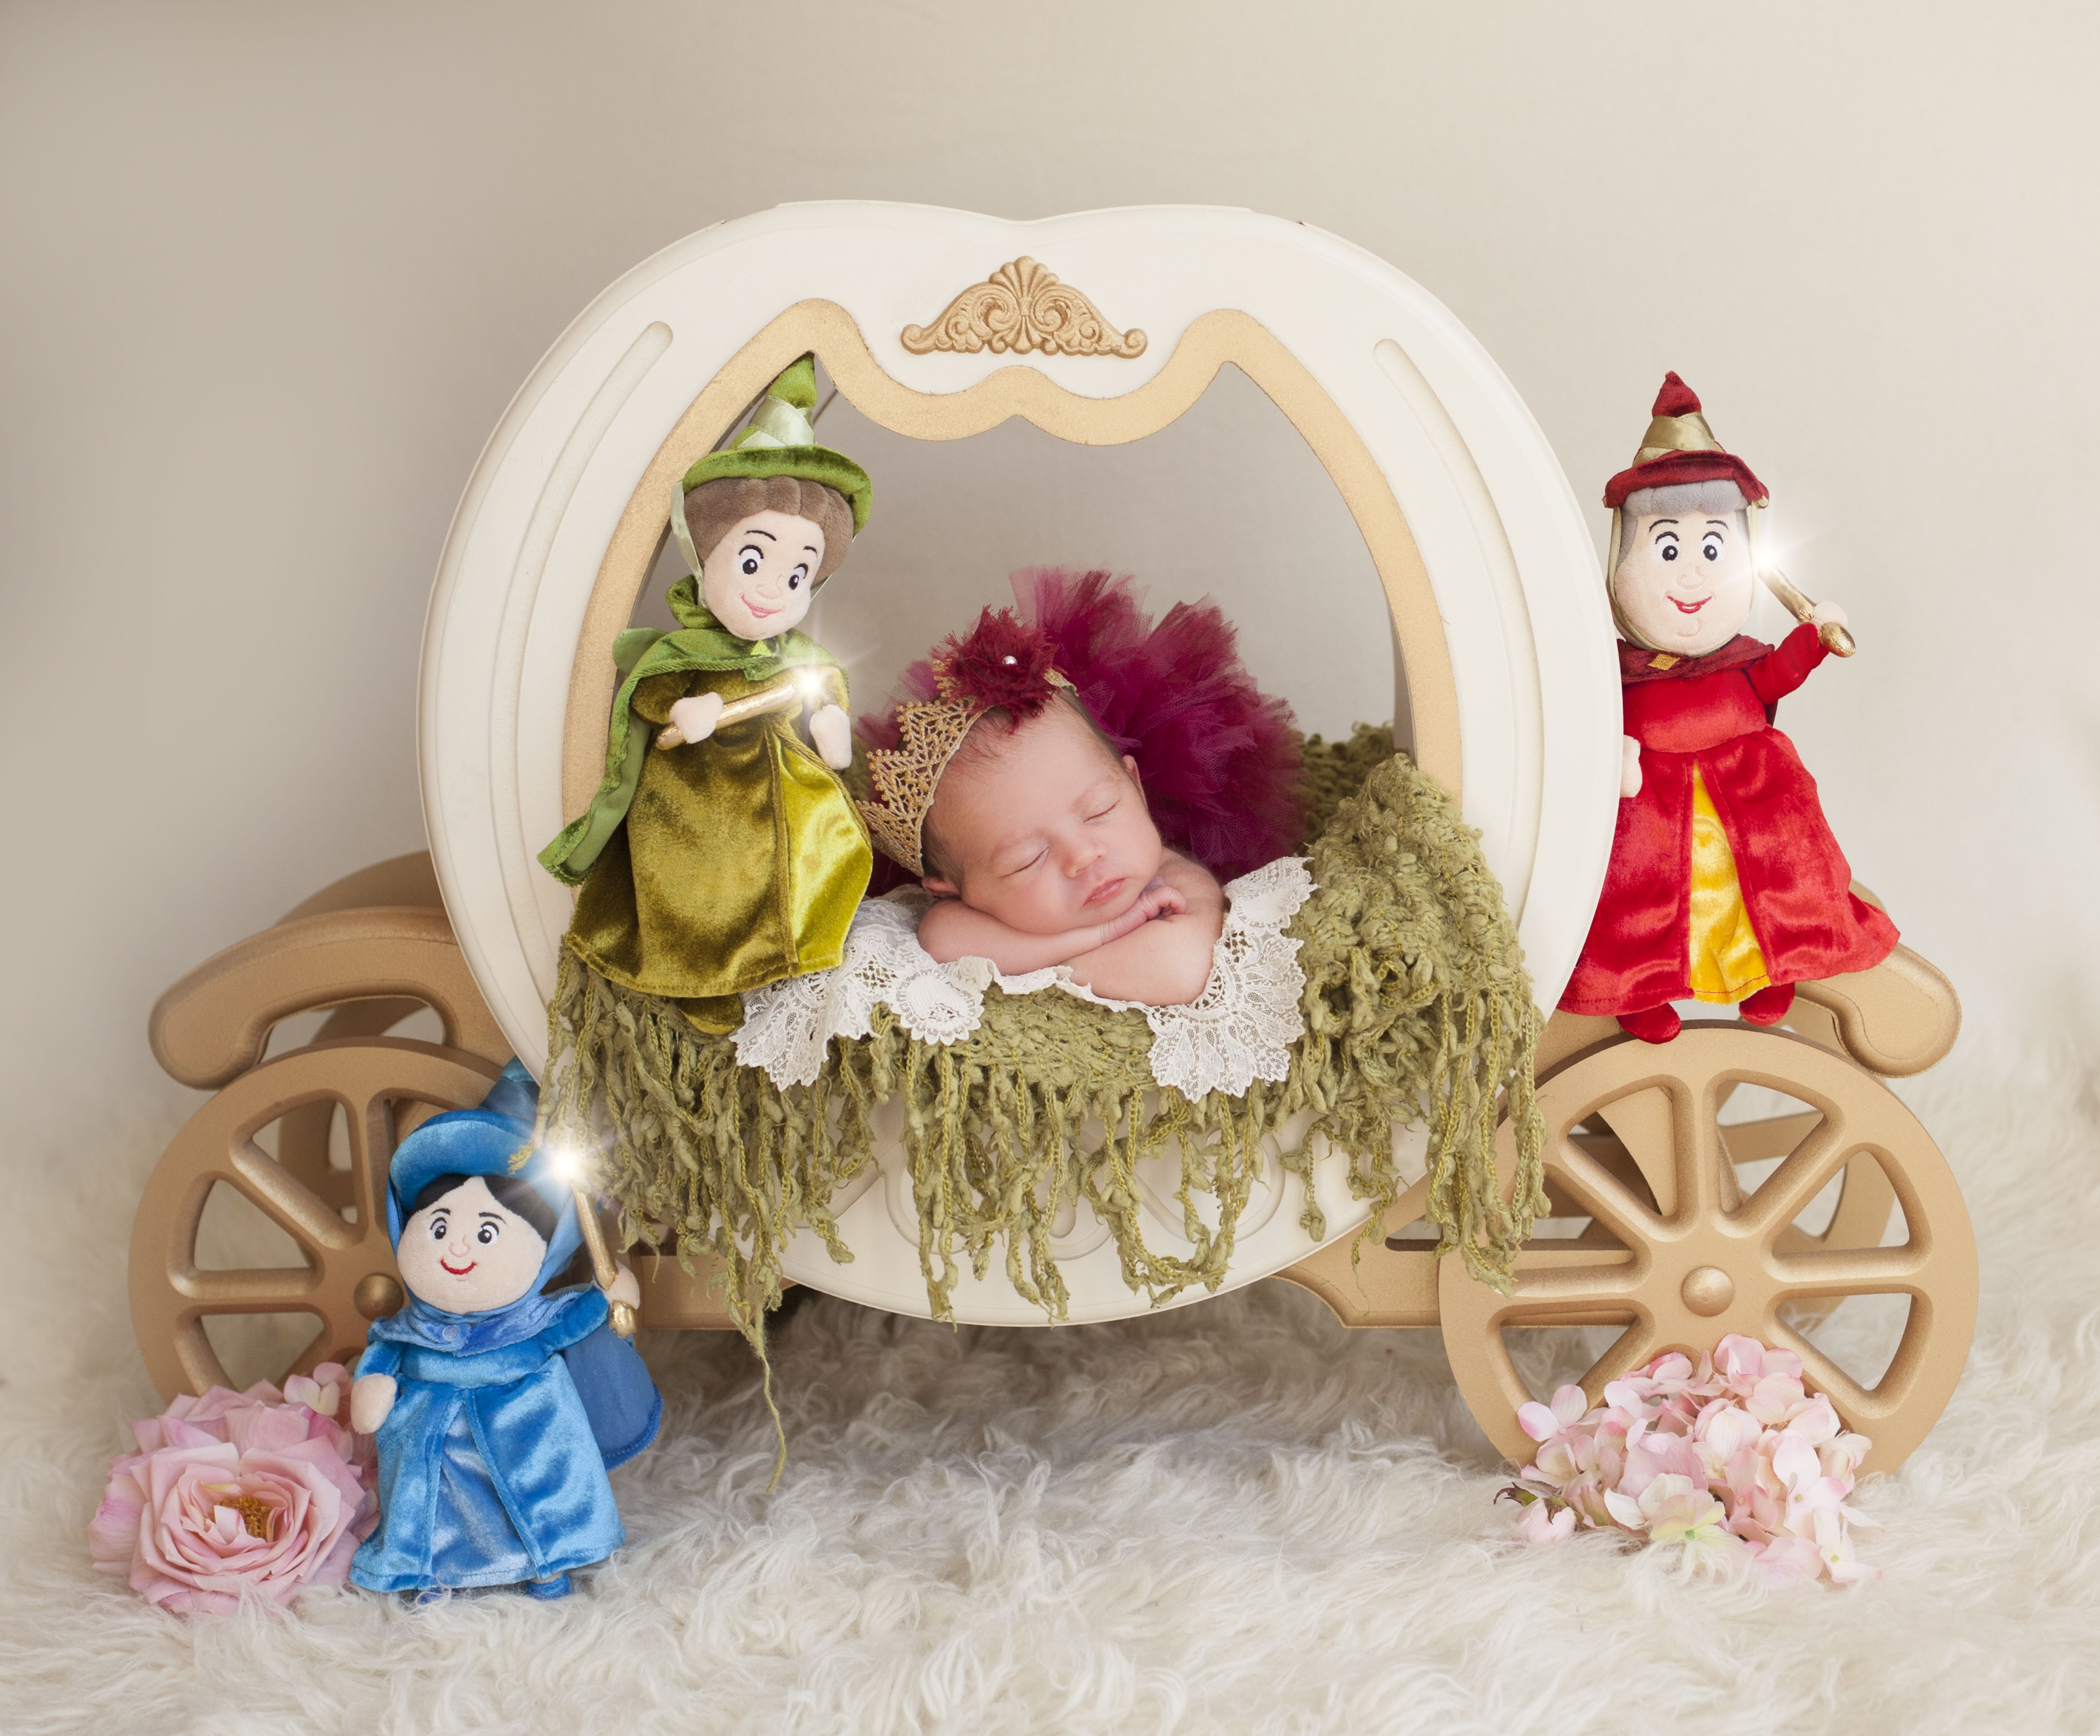 New Baby Fairytale Shoot With Princess Aurora And Her Fairy Godmothers New Baby Products Baby Girl Newborn Princess Aurora